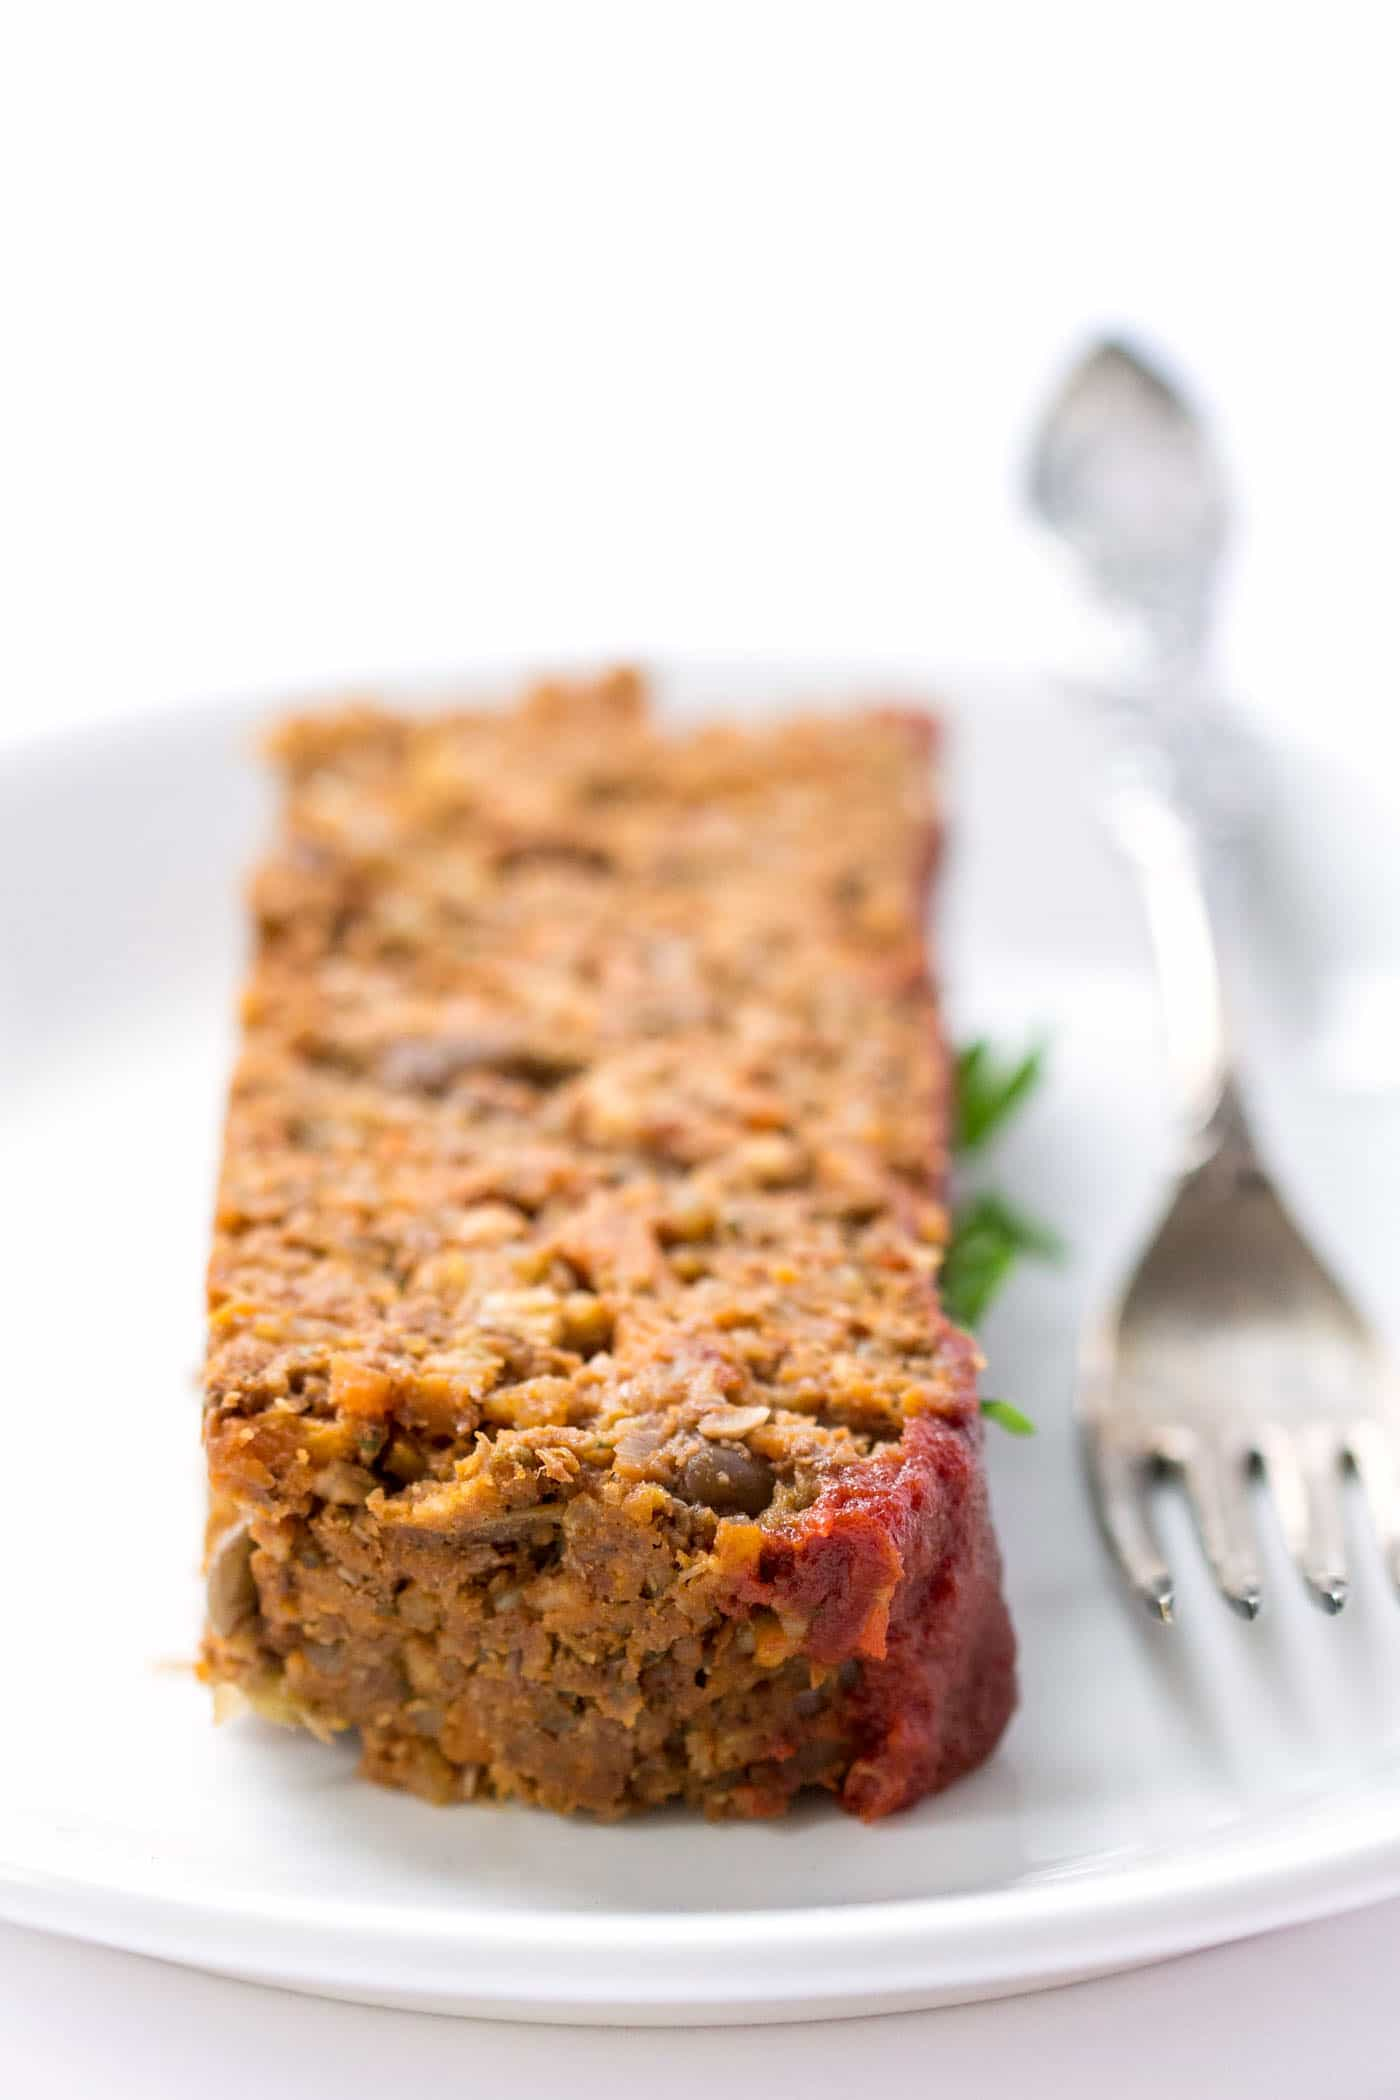 This easy QUINOA MEATLOAF is vegan, gluten-free, packed with protein and veggies, and makes for a healthy and nutritious weeknight meal!